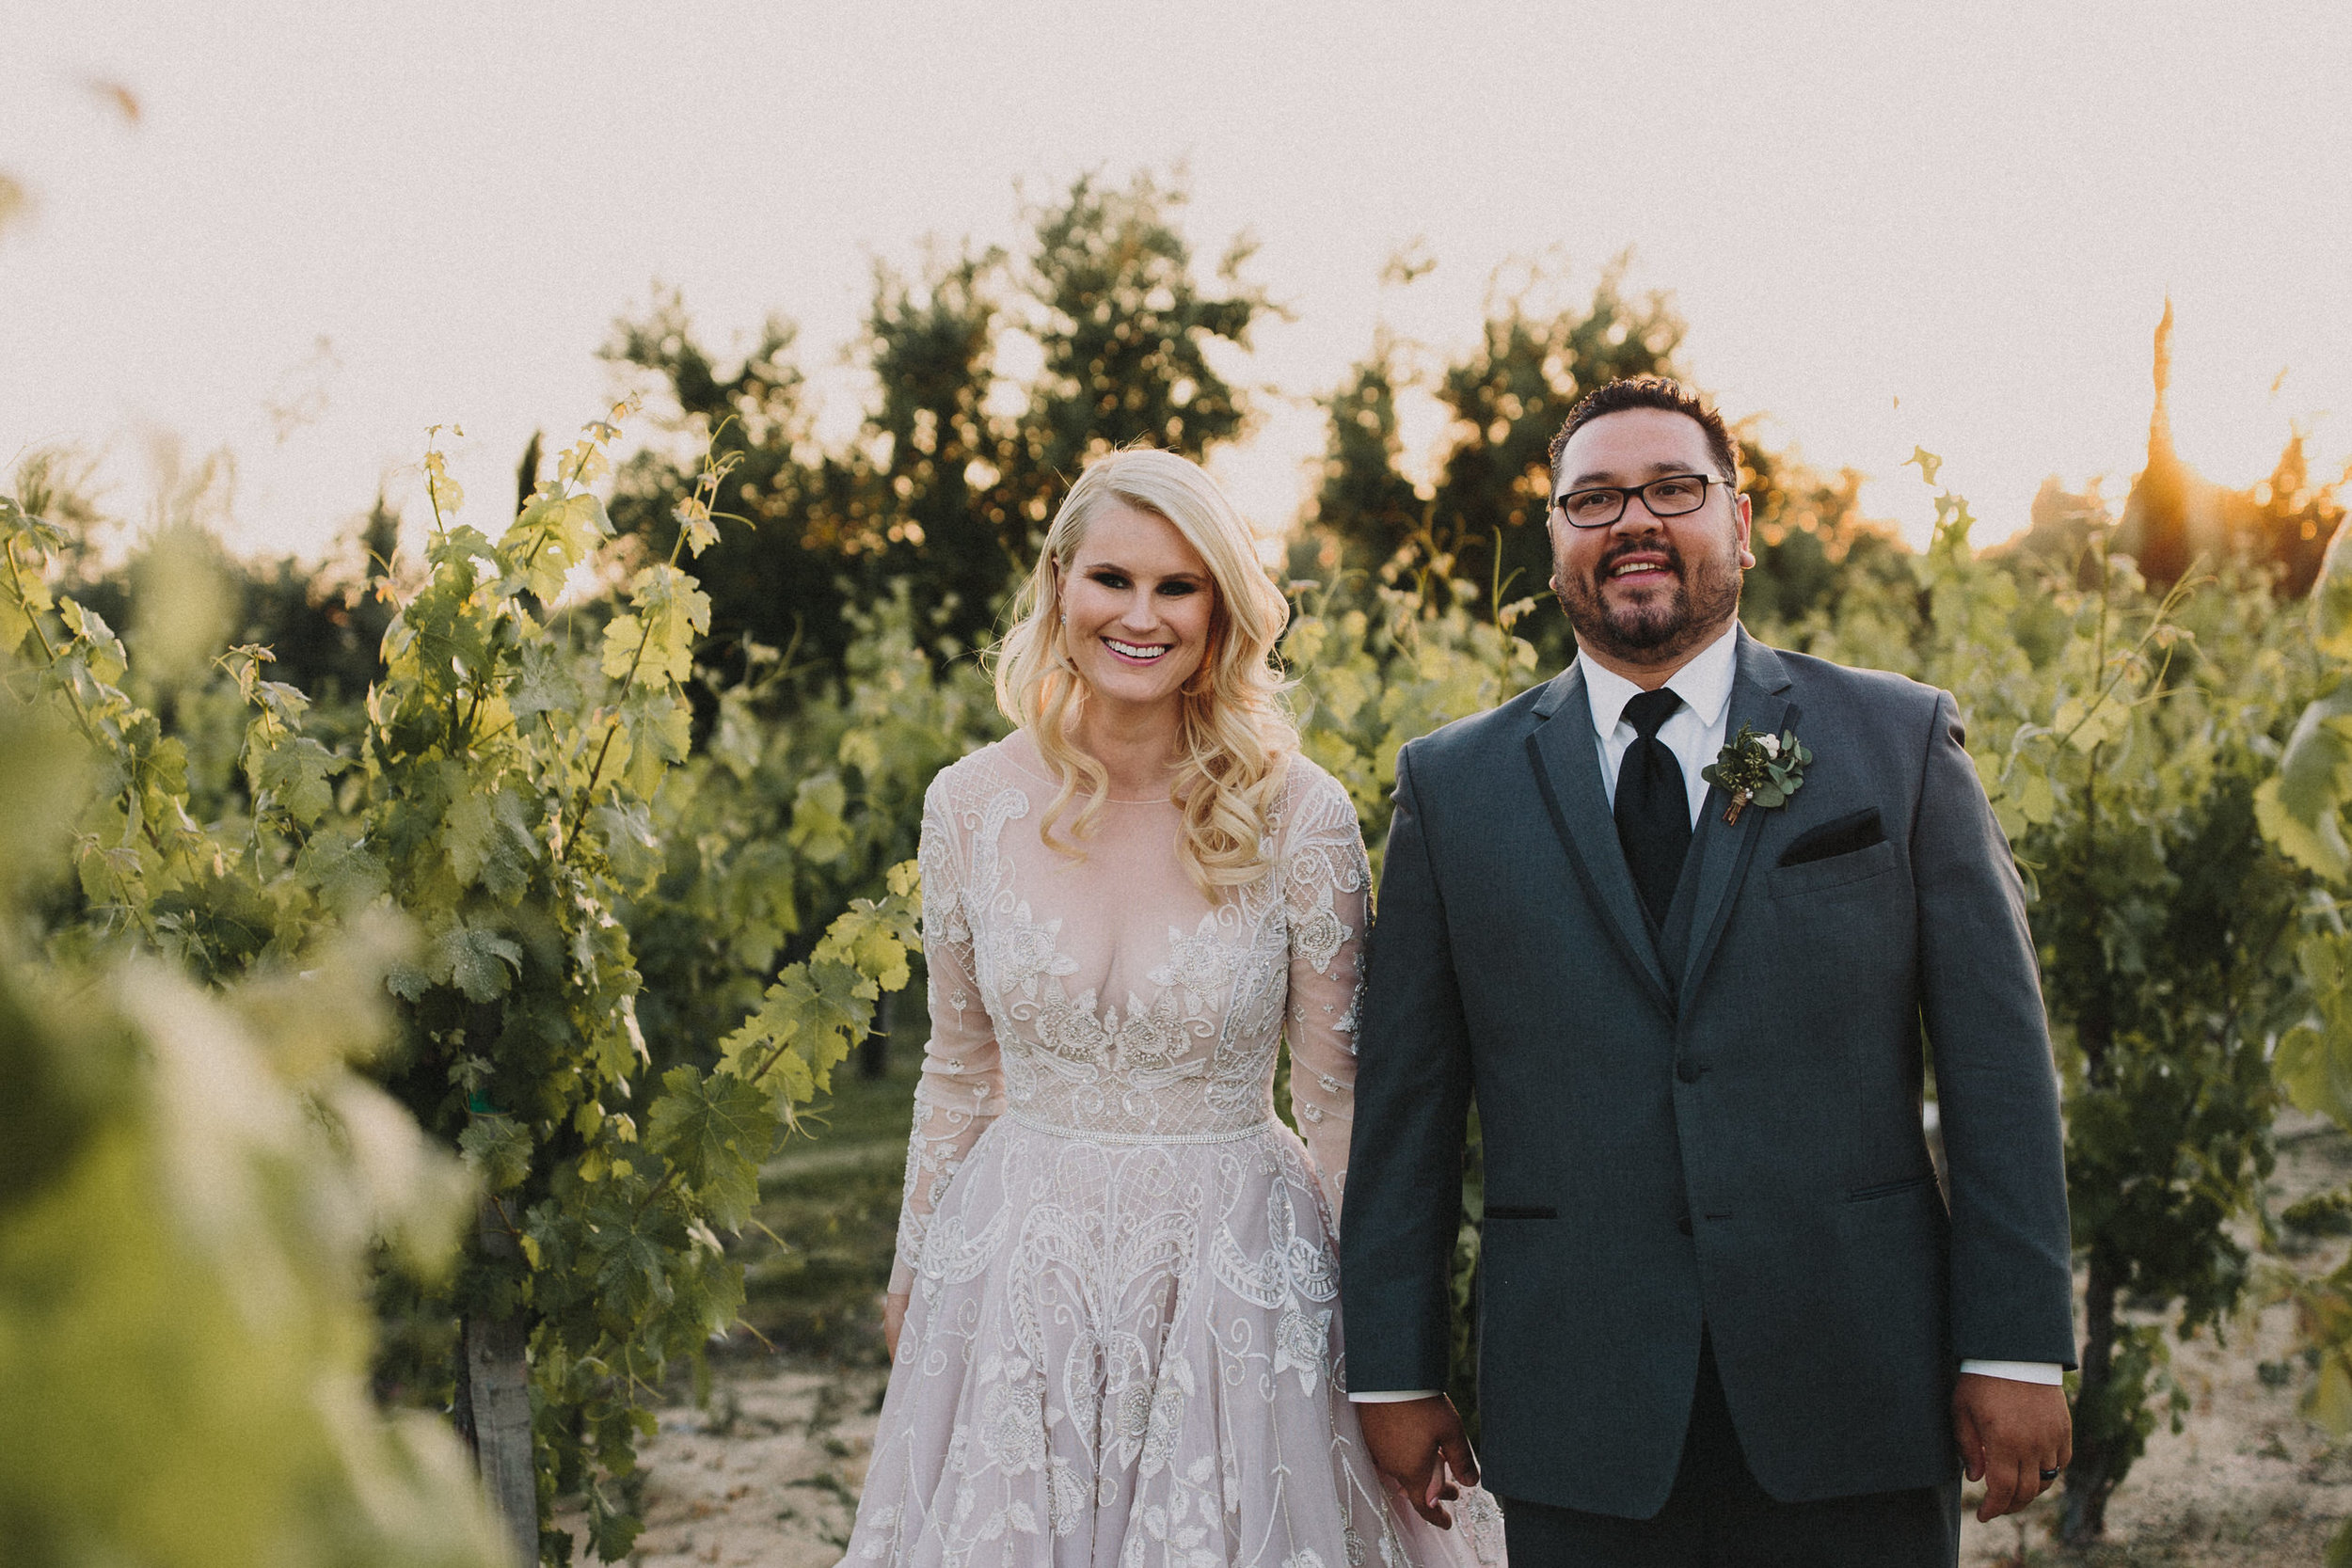 Stephanie + Charles - Mount Palomar Winery Wedding-37.jpg